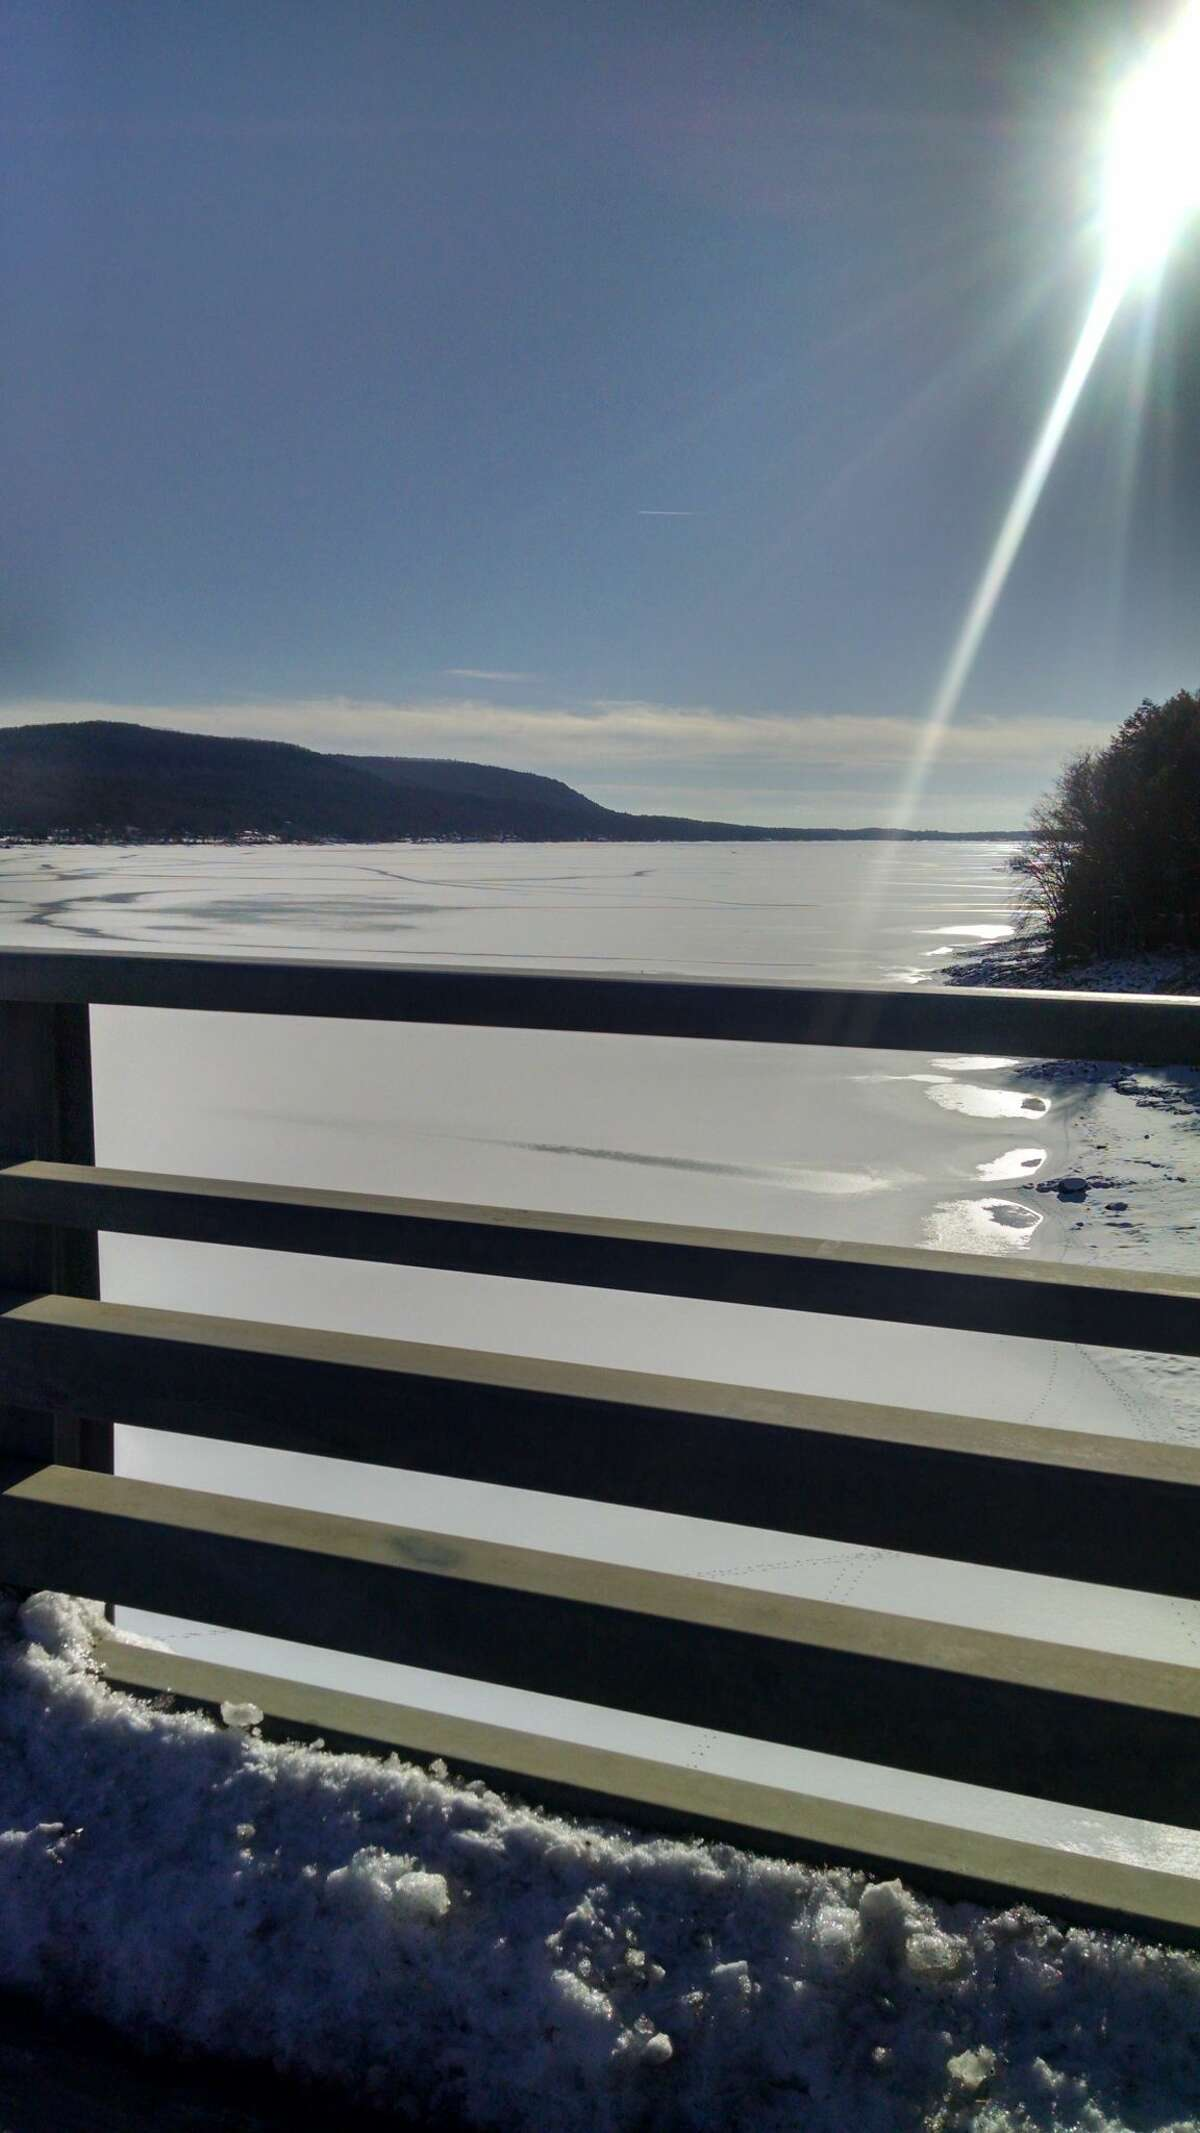 Fulton County's sheriff has issued a warning about the ice on the Great Sacandaga Lake, seen here from the Batchellerville Bridge in the lake's Saratoga County section on Jan. 8, 2021.